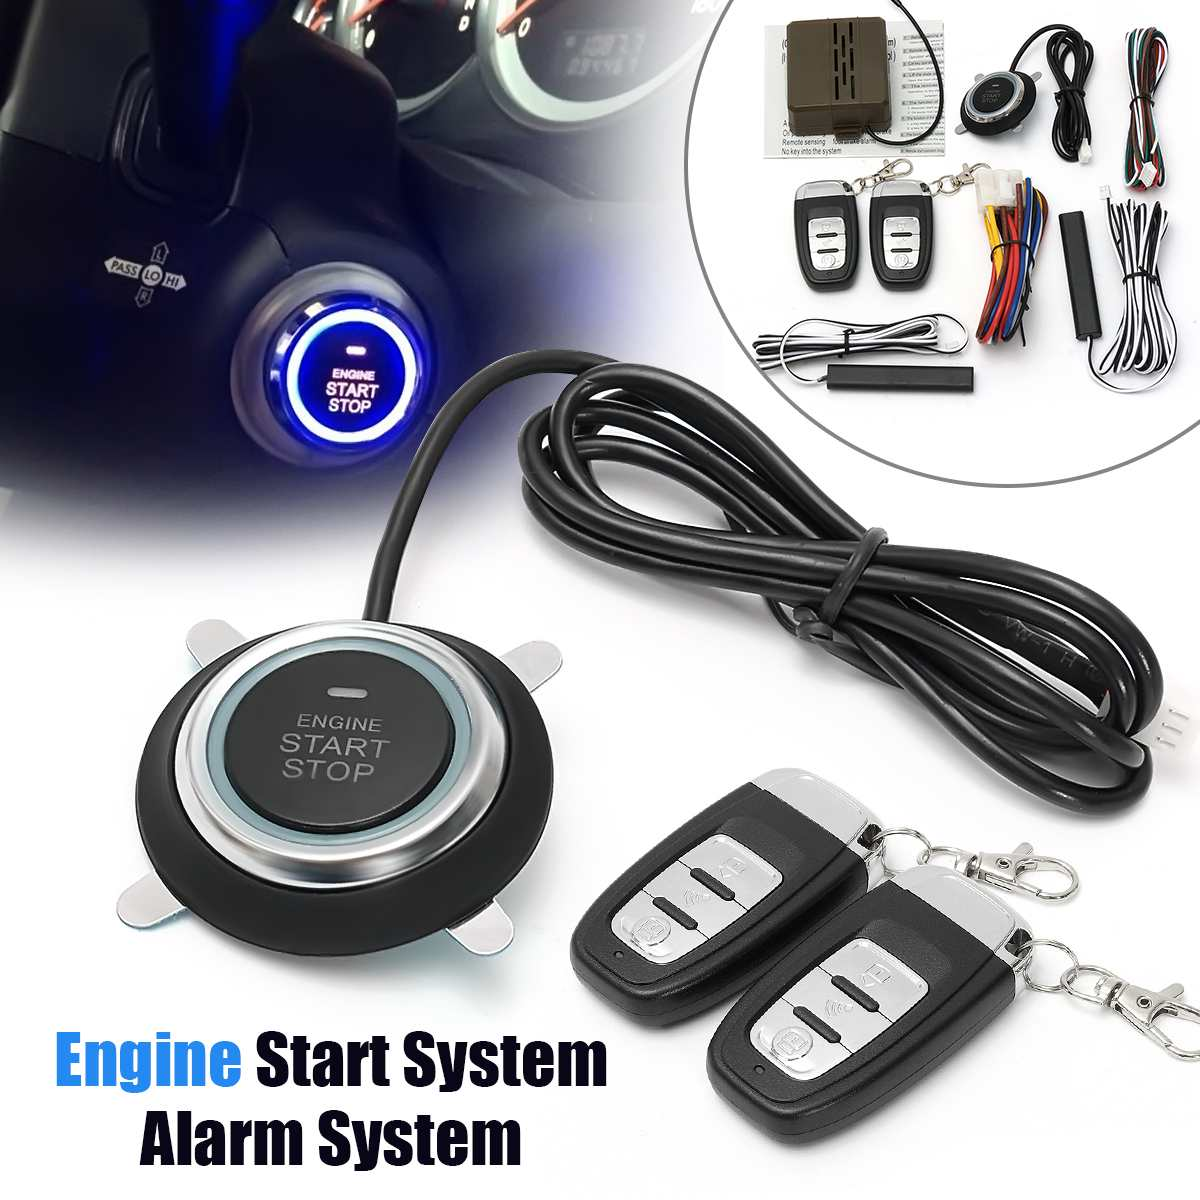 Audew Auto Motor Start Stop SUV Keyless Entry Engine Start Alarm System Push Button Remote Starter Stop Auto Auto Zubehör